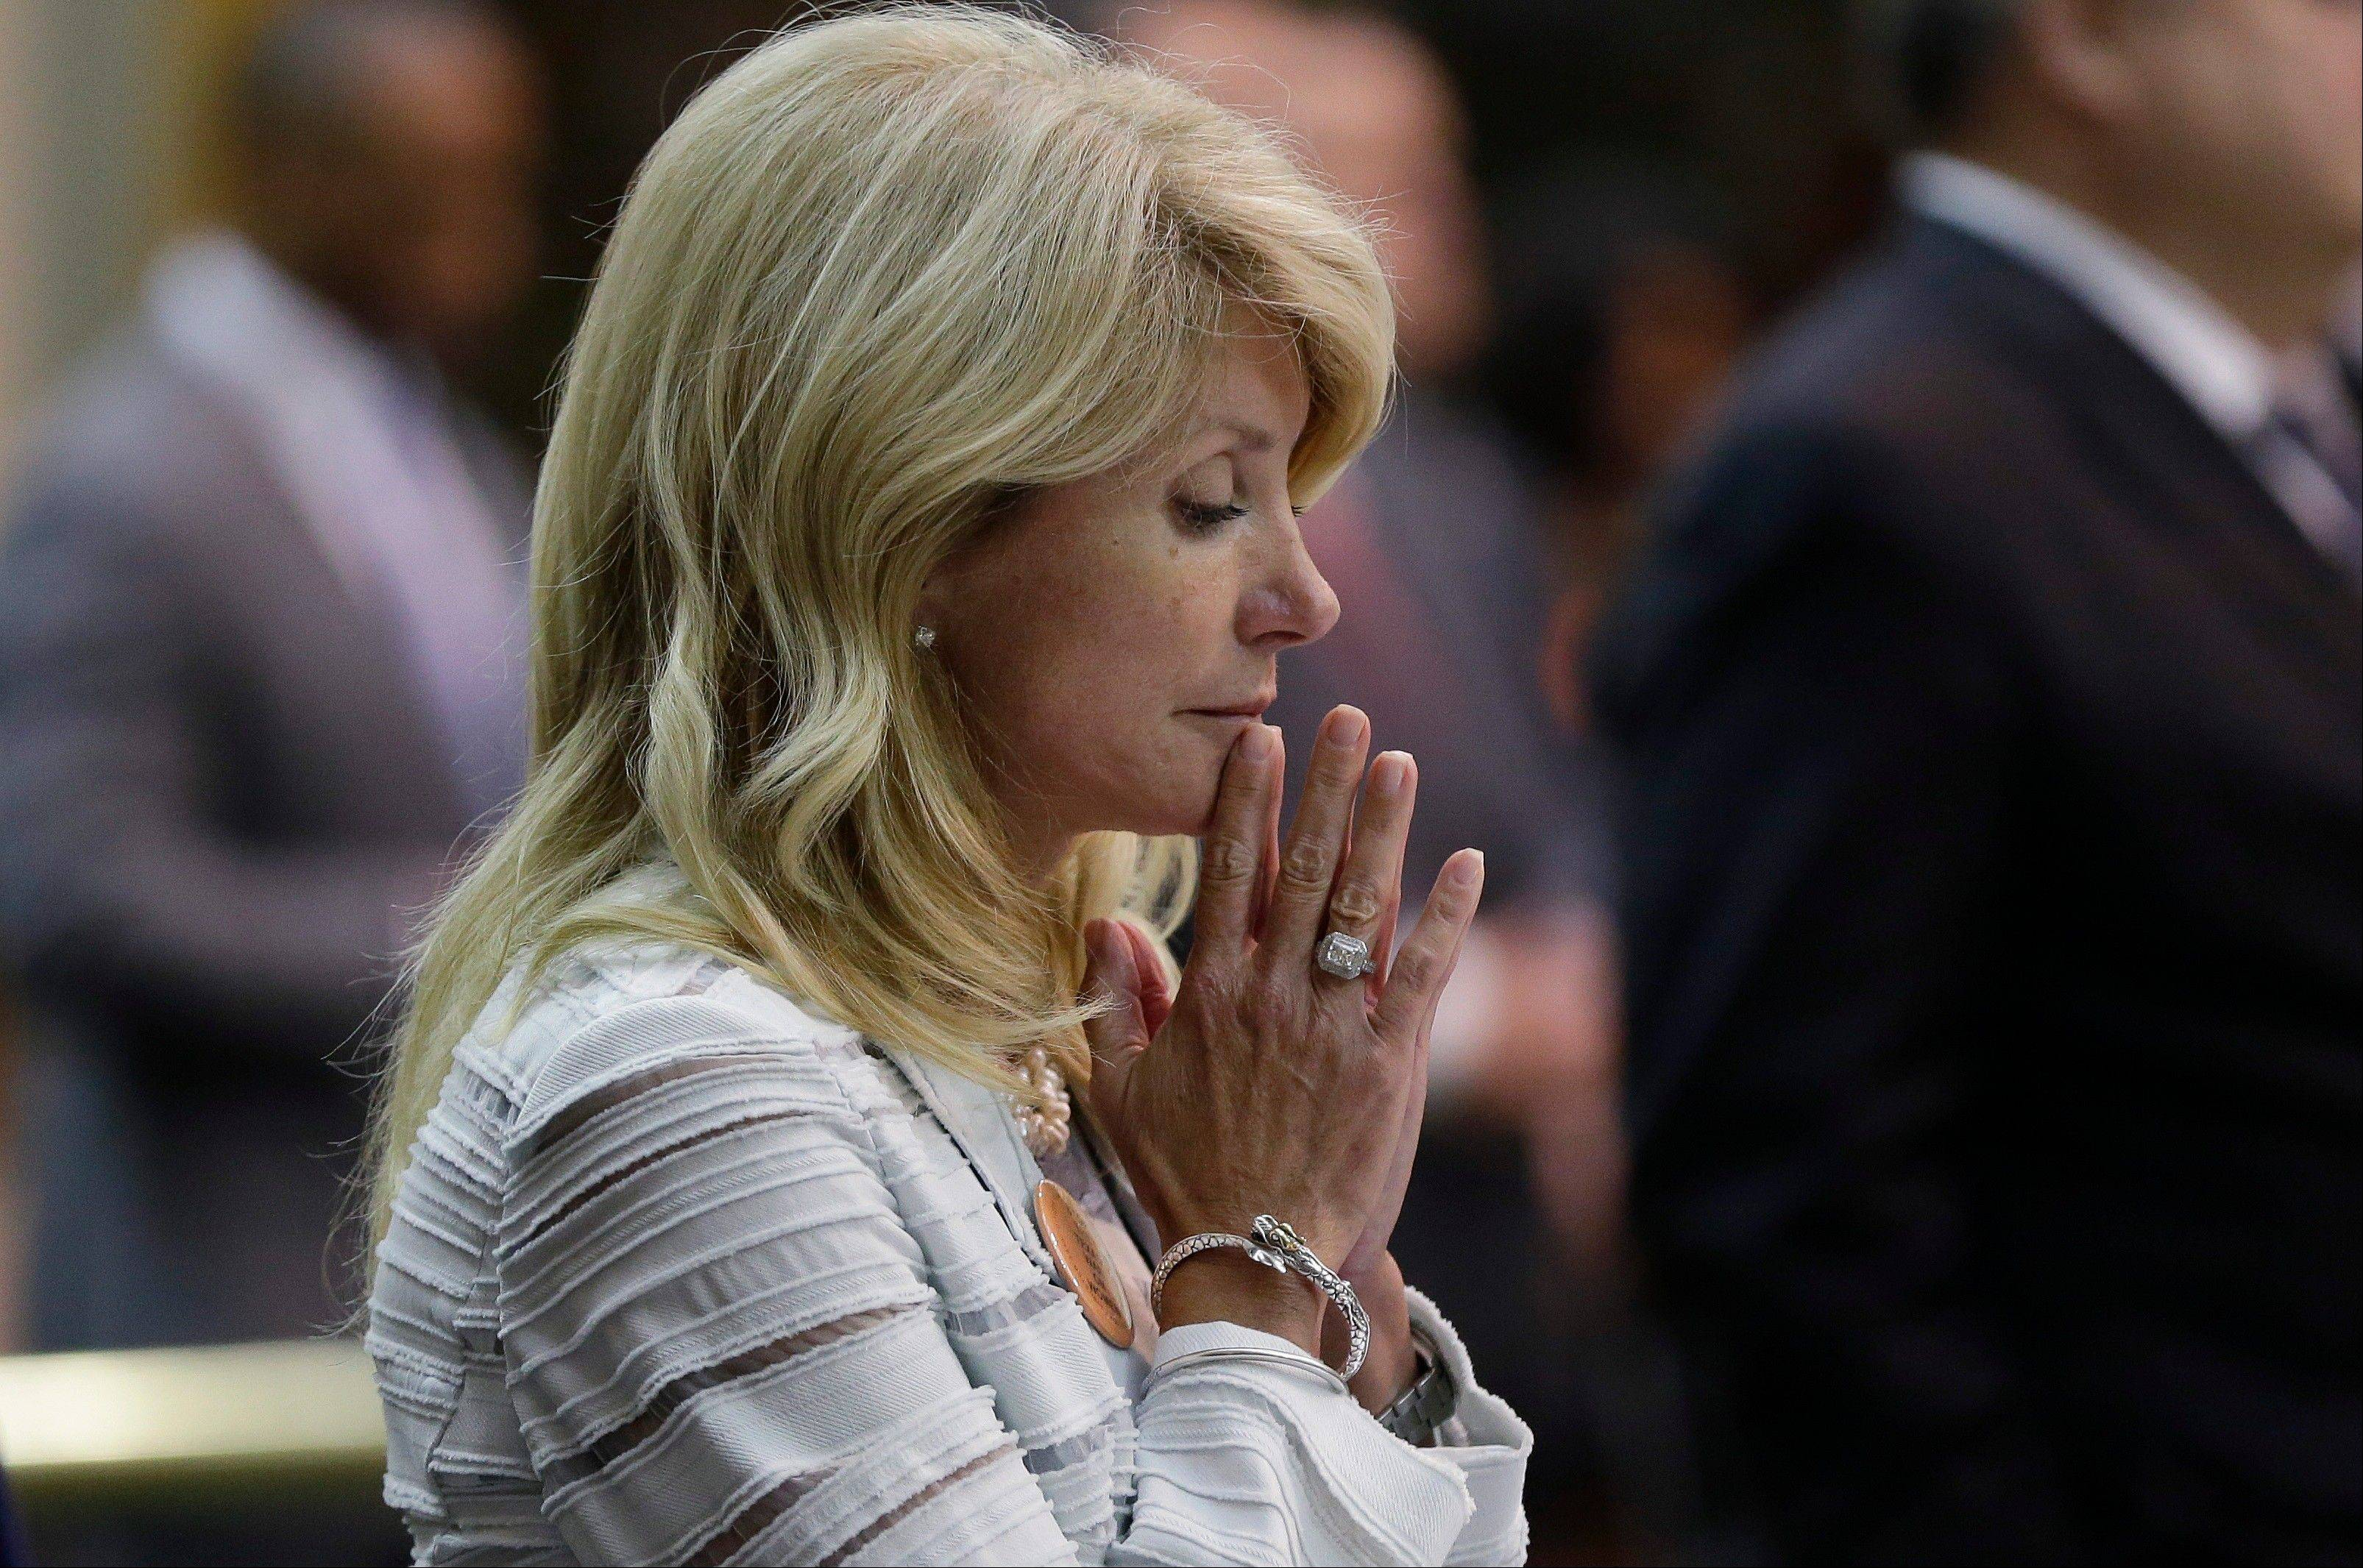 Sen. Wendy Davis, D-Fort Worth, reacts after she was called for a third and final violation in rules to end her filibuster attempt to kill an abortion bill, Tuesday, June 25, 2013, in Austin, Texas. The bill would ban abortion after 20 weeks of pregnancy and force many clinics that perform the procedure to upgrade their facilities and be classified as ambulatory surgical centers.